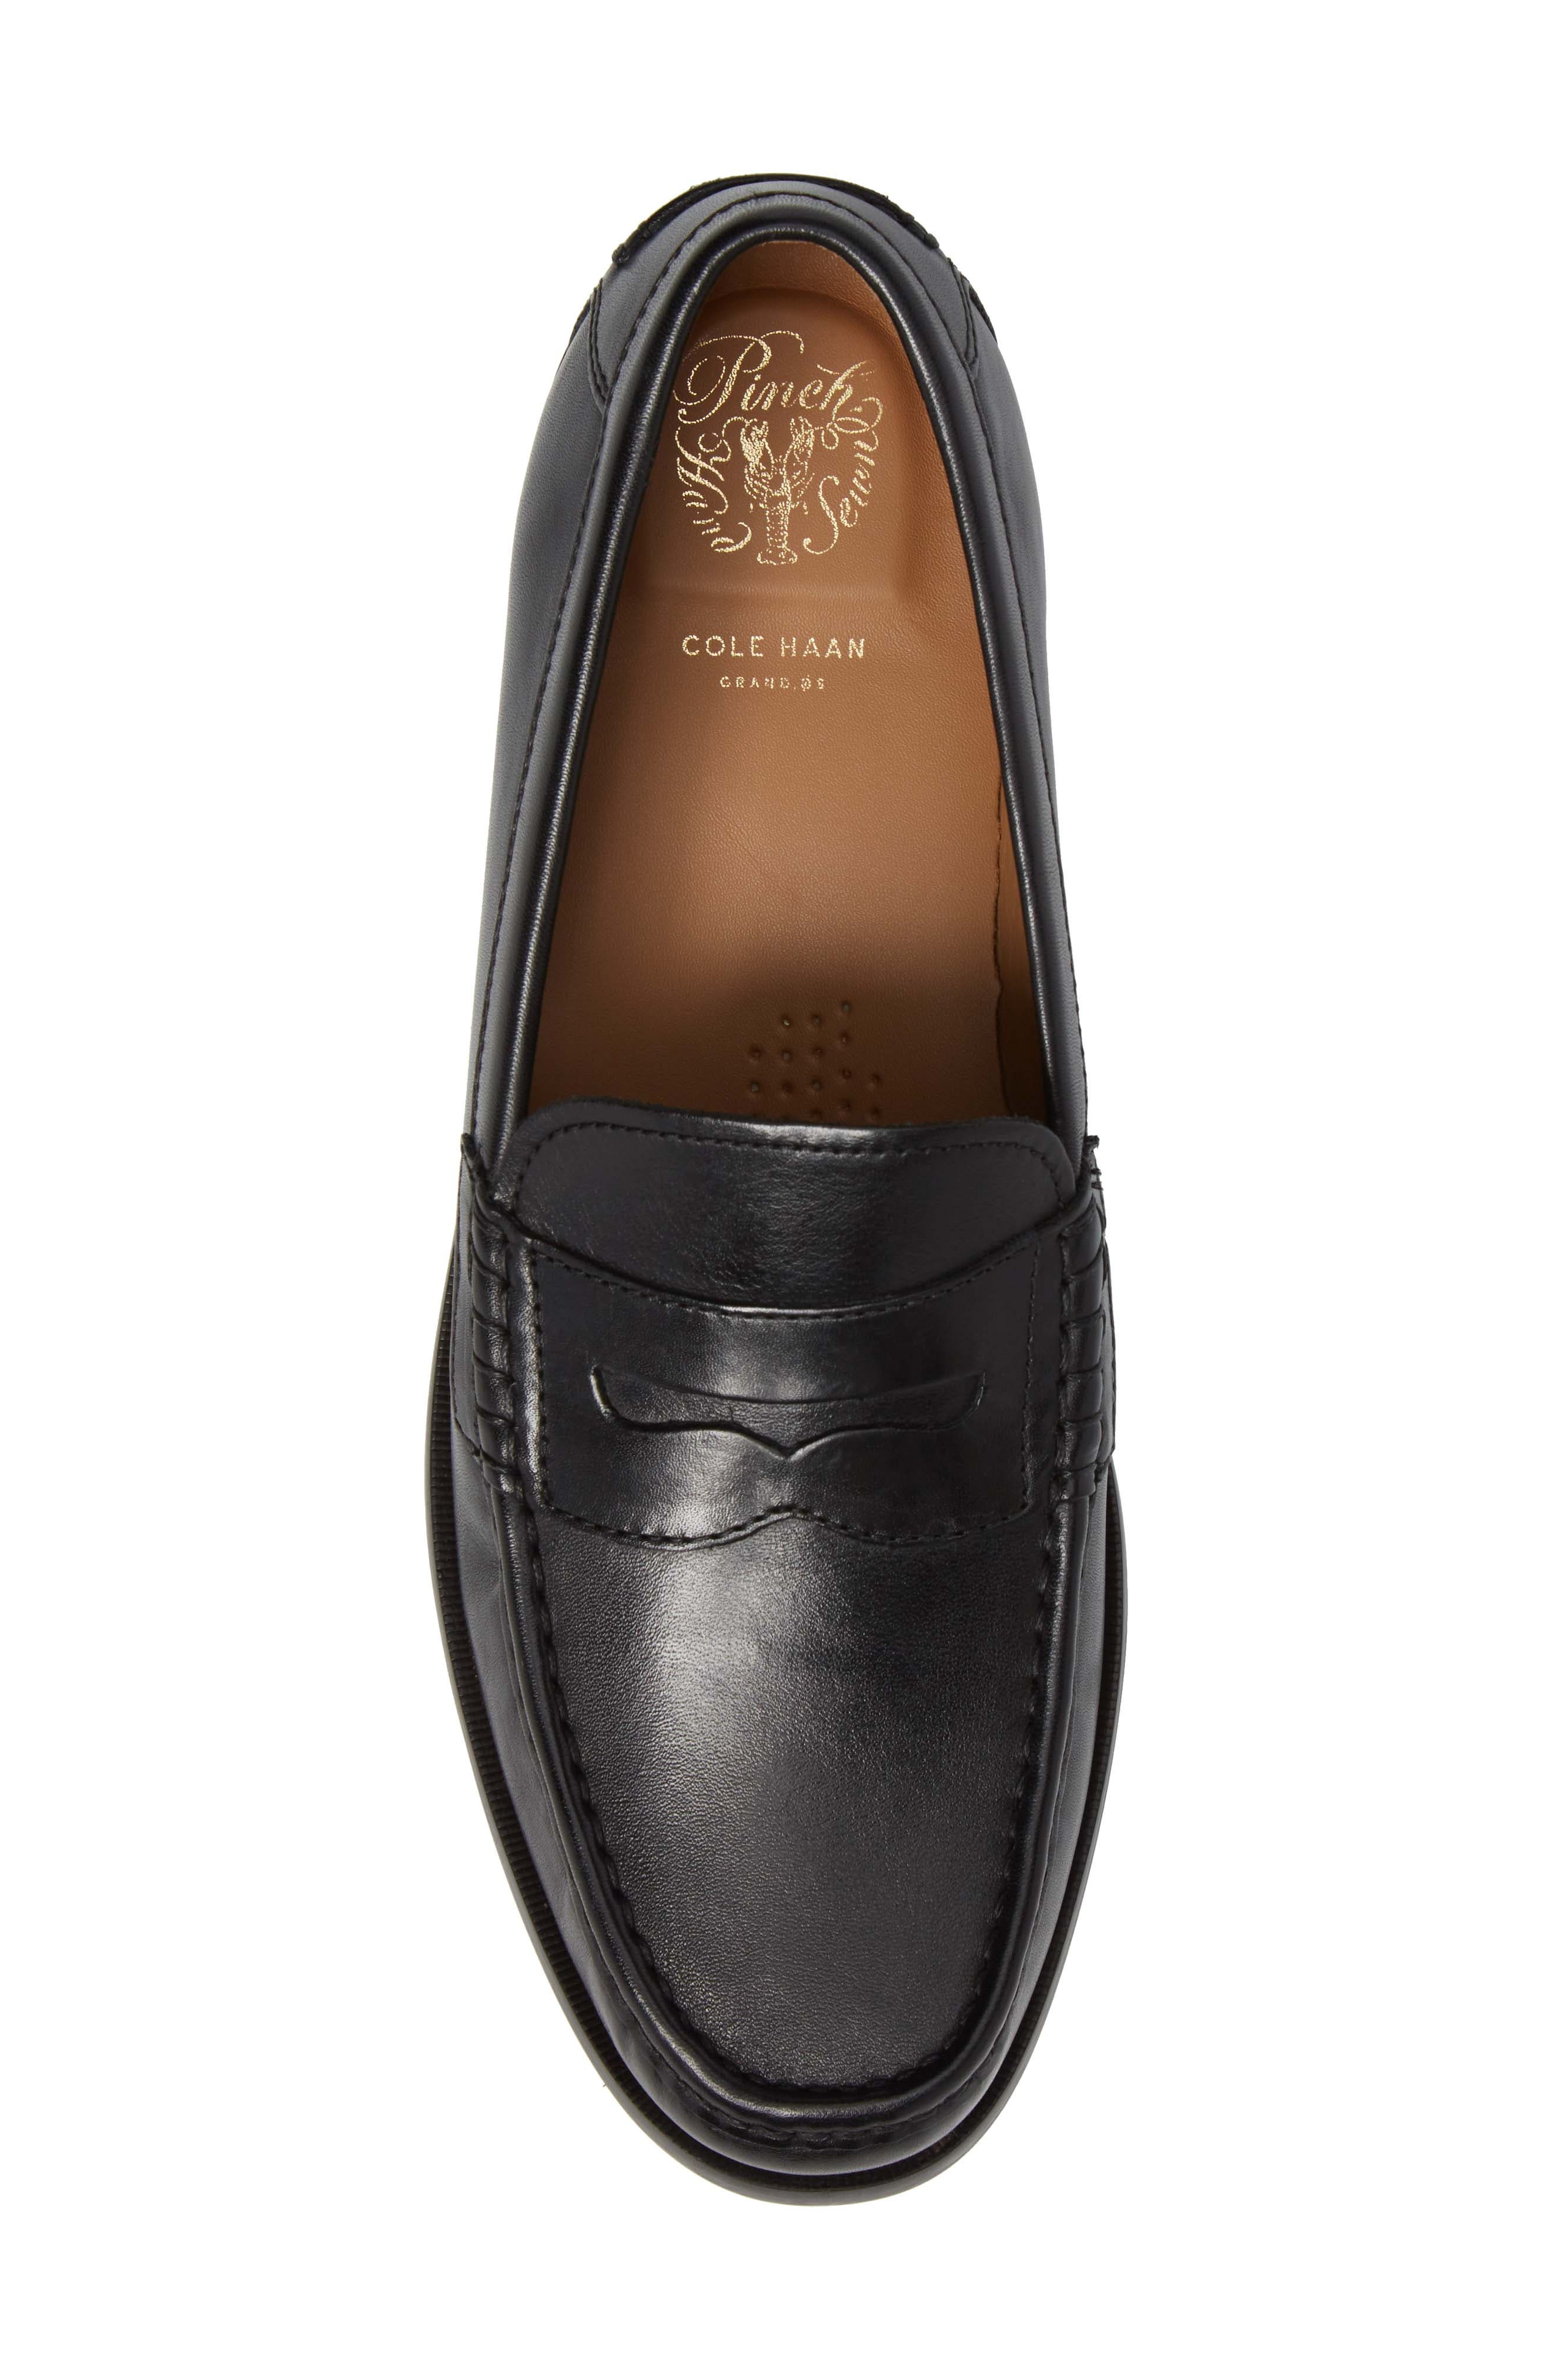 Pinch Friday Penny Loafer,                             Alternate thumbnail 5, color,                             Black Leather